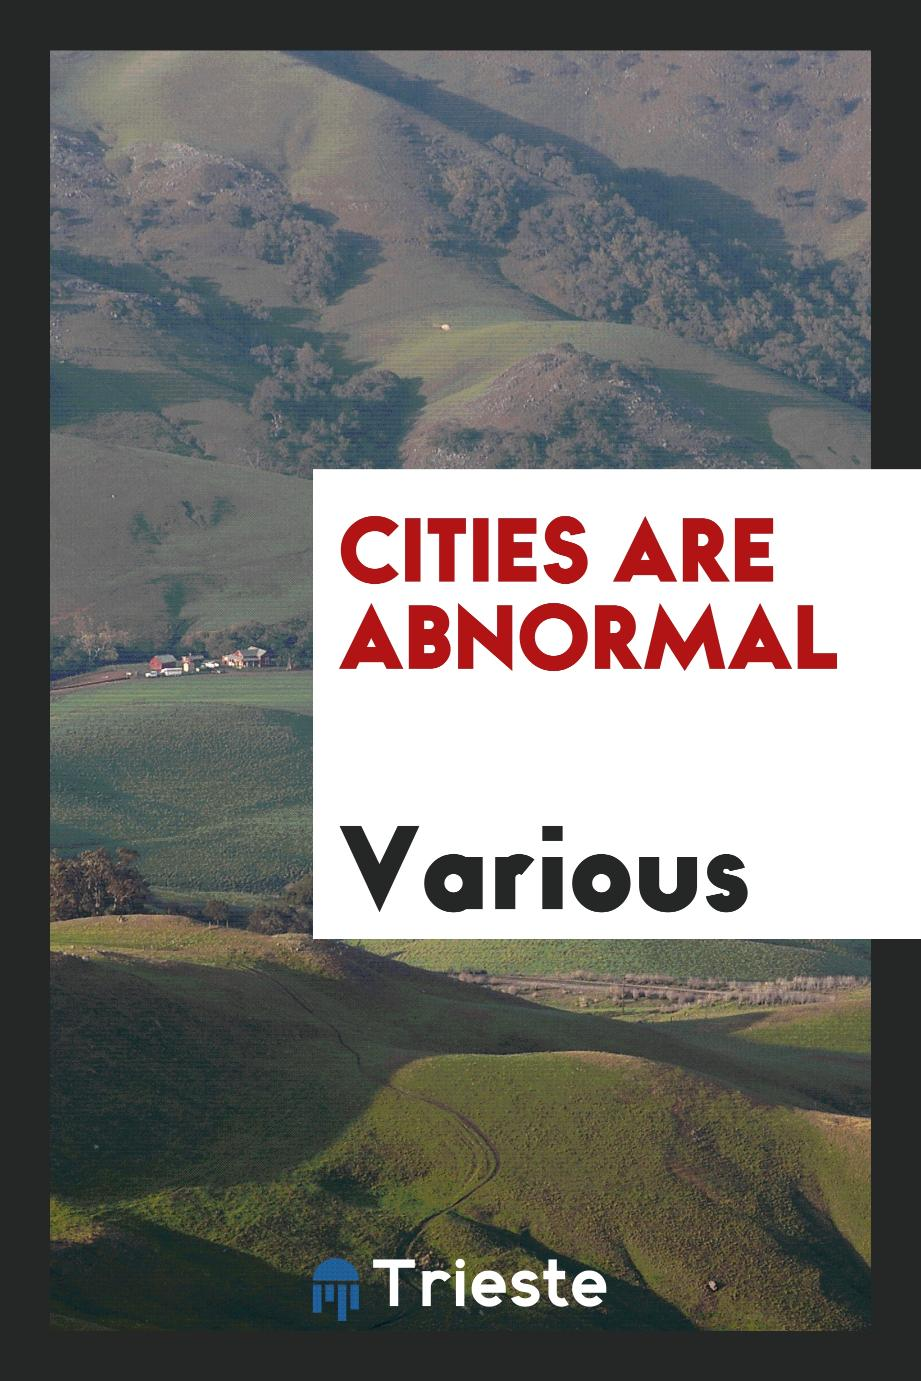 Cities are abnormal